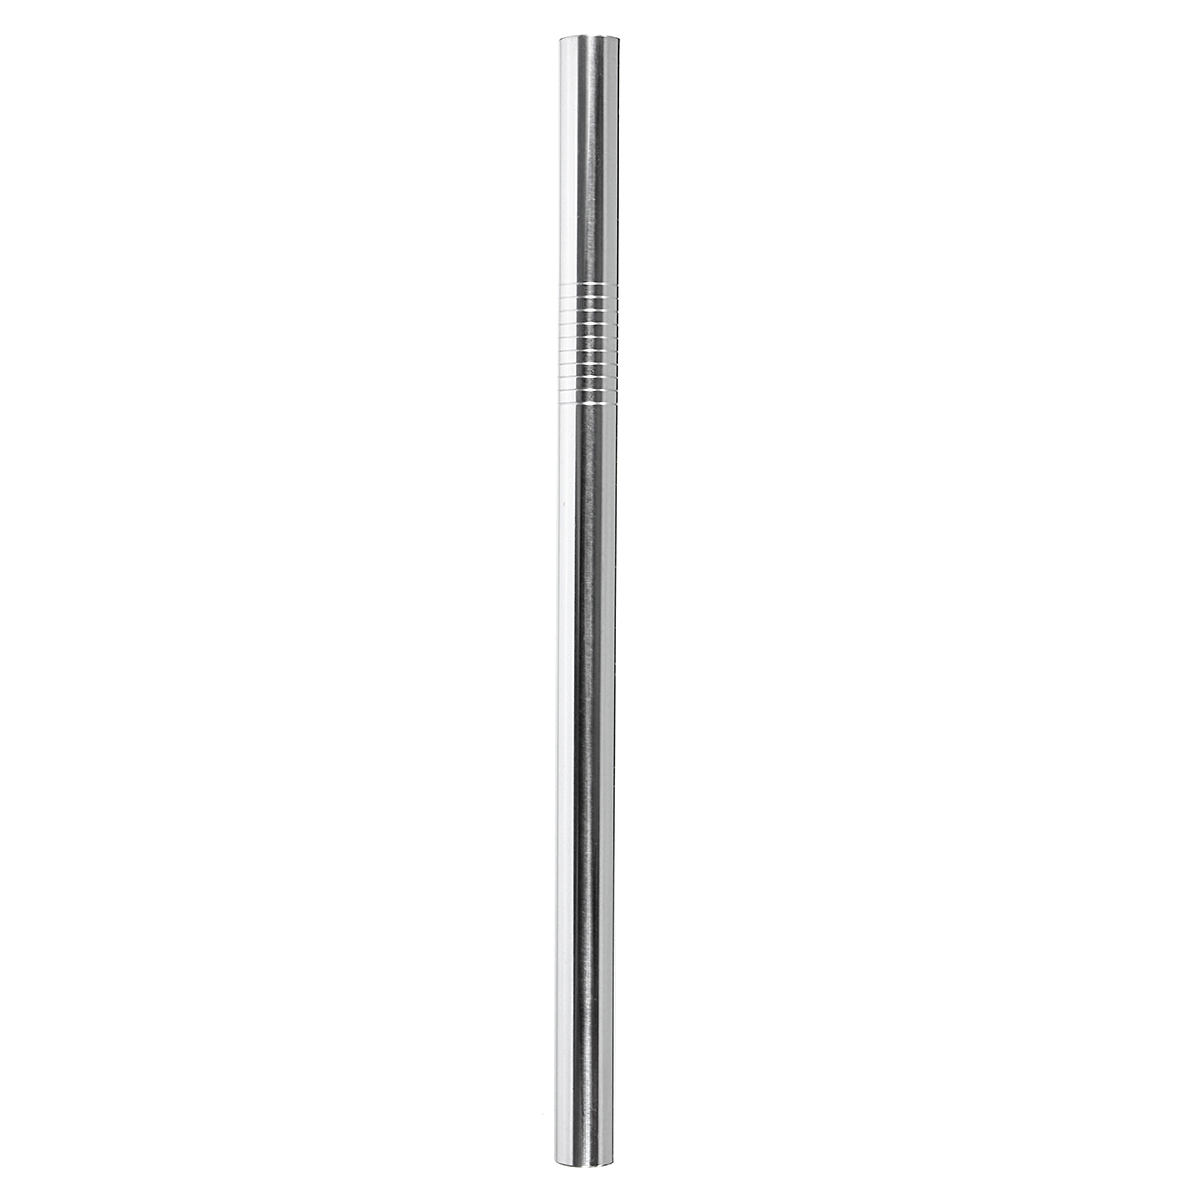 Stainless Steel Straw Ultra Long Reusable Drinking Metal Straws Kit Bent/Straight